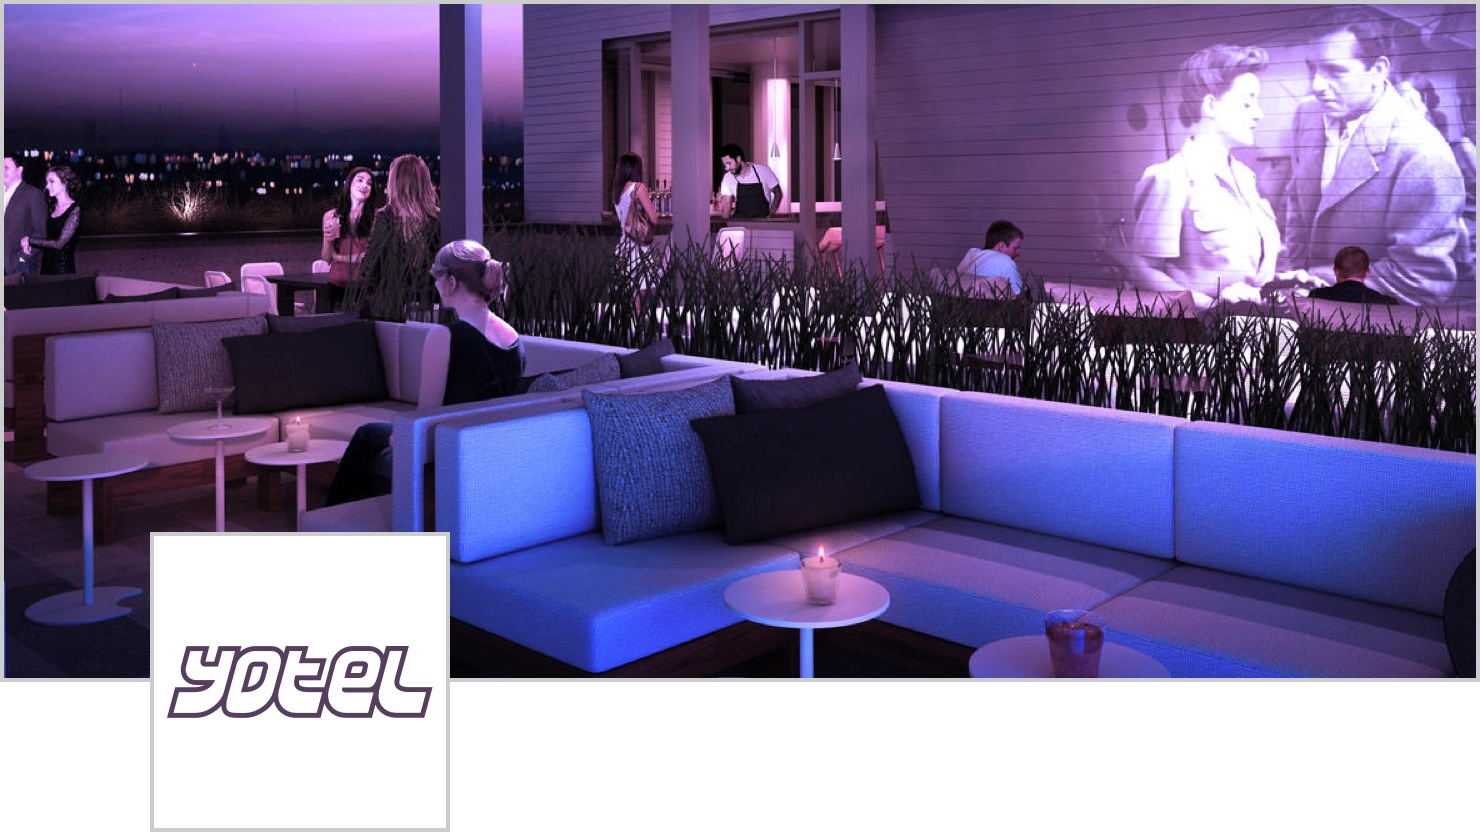 Brand, values, and communication reach YOTEL's global workforce